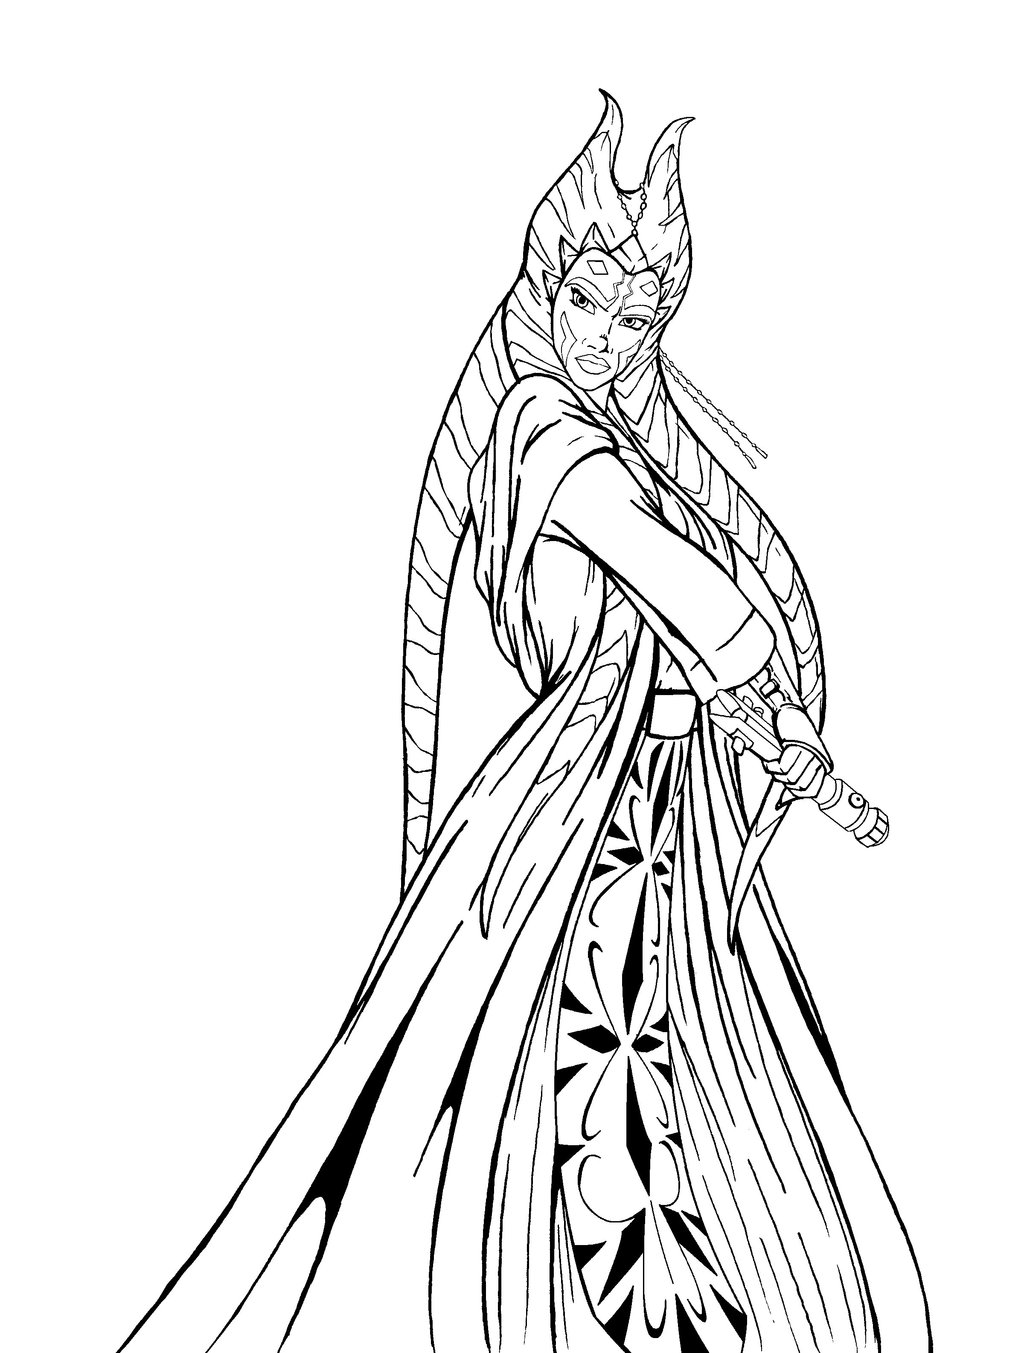 asoka coloring pages - photo#16